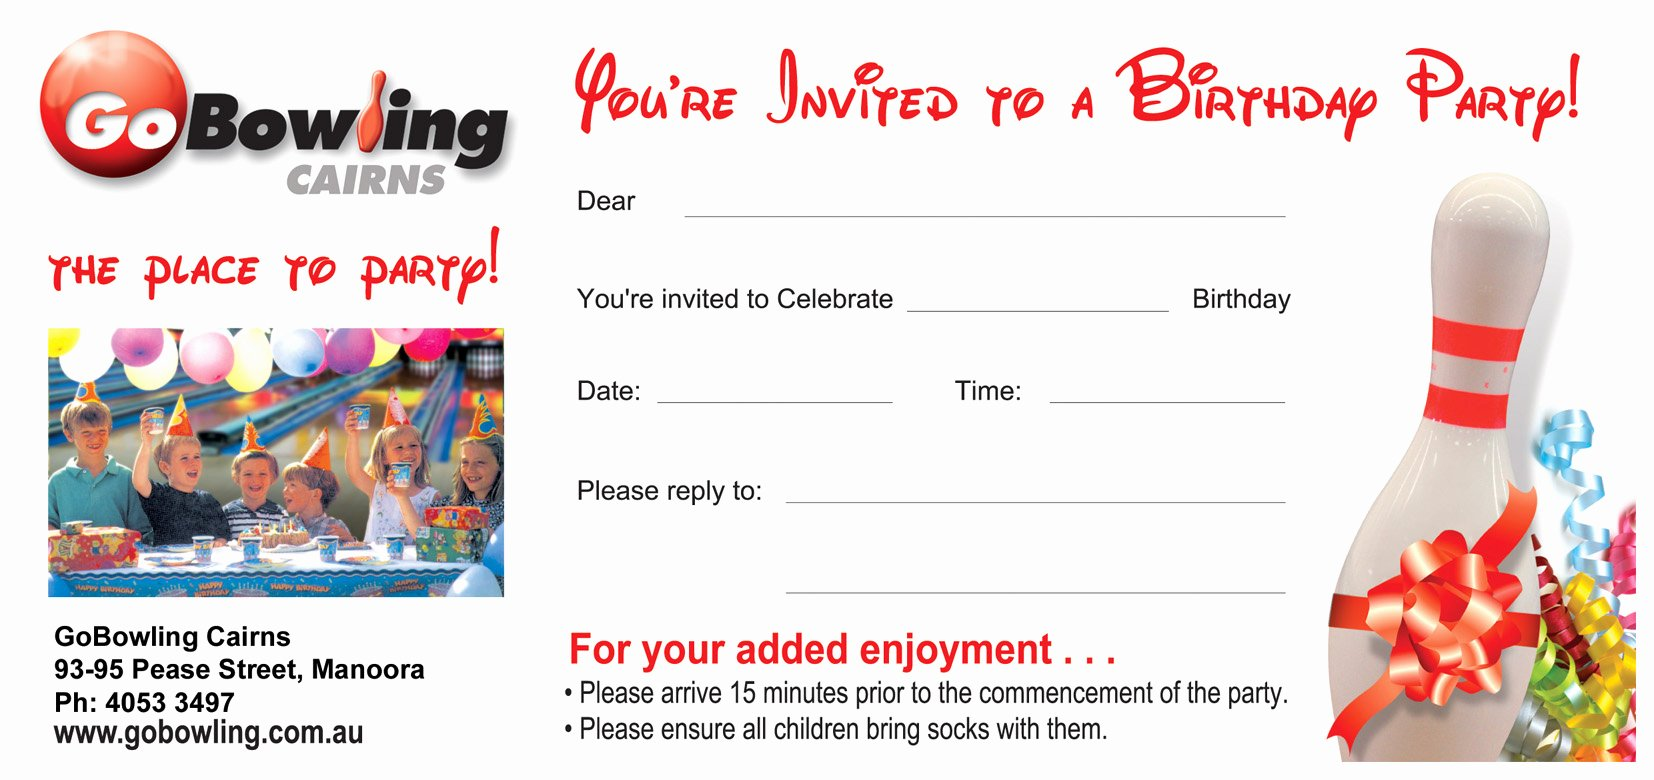 Bowling Party Invitation Template Awesome Bowling Party Invitations Templates Ideas Bowling Party Invitations Free Templates